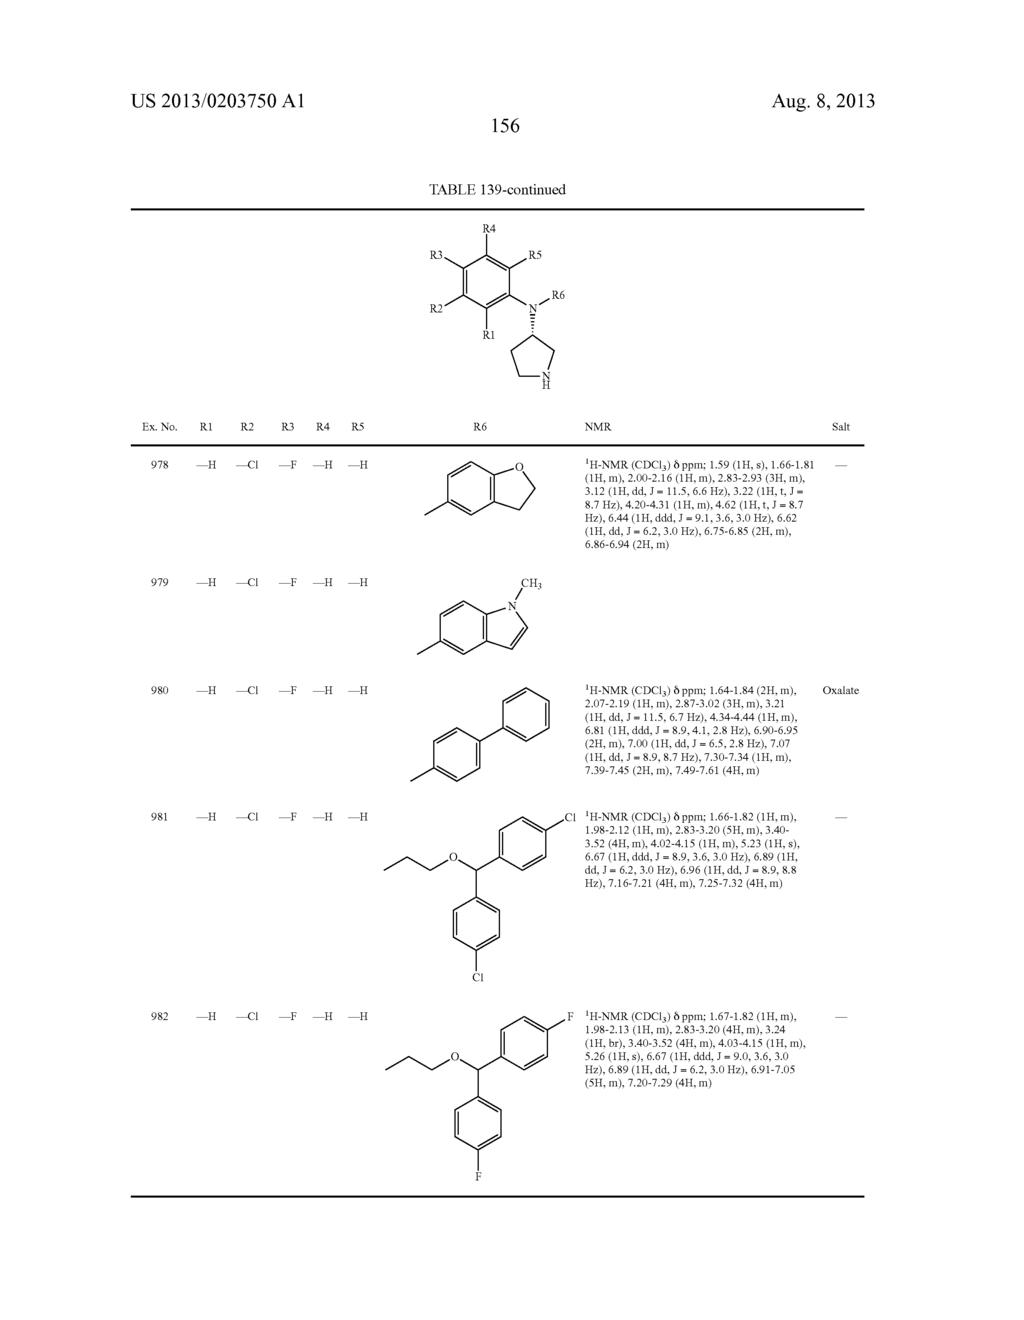 N,N-SUBSTITUTED 3-AMINOPYRROLIDINE COMPOUNDS USEFUL AS MONOAMINES REUPTAKE     INHIBITORS - diagram, schematic, and image 157